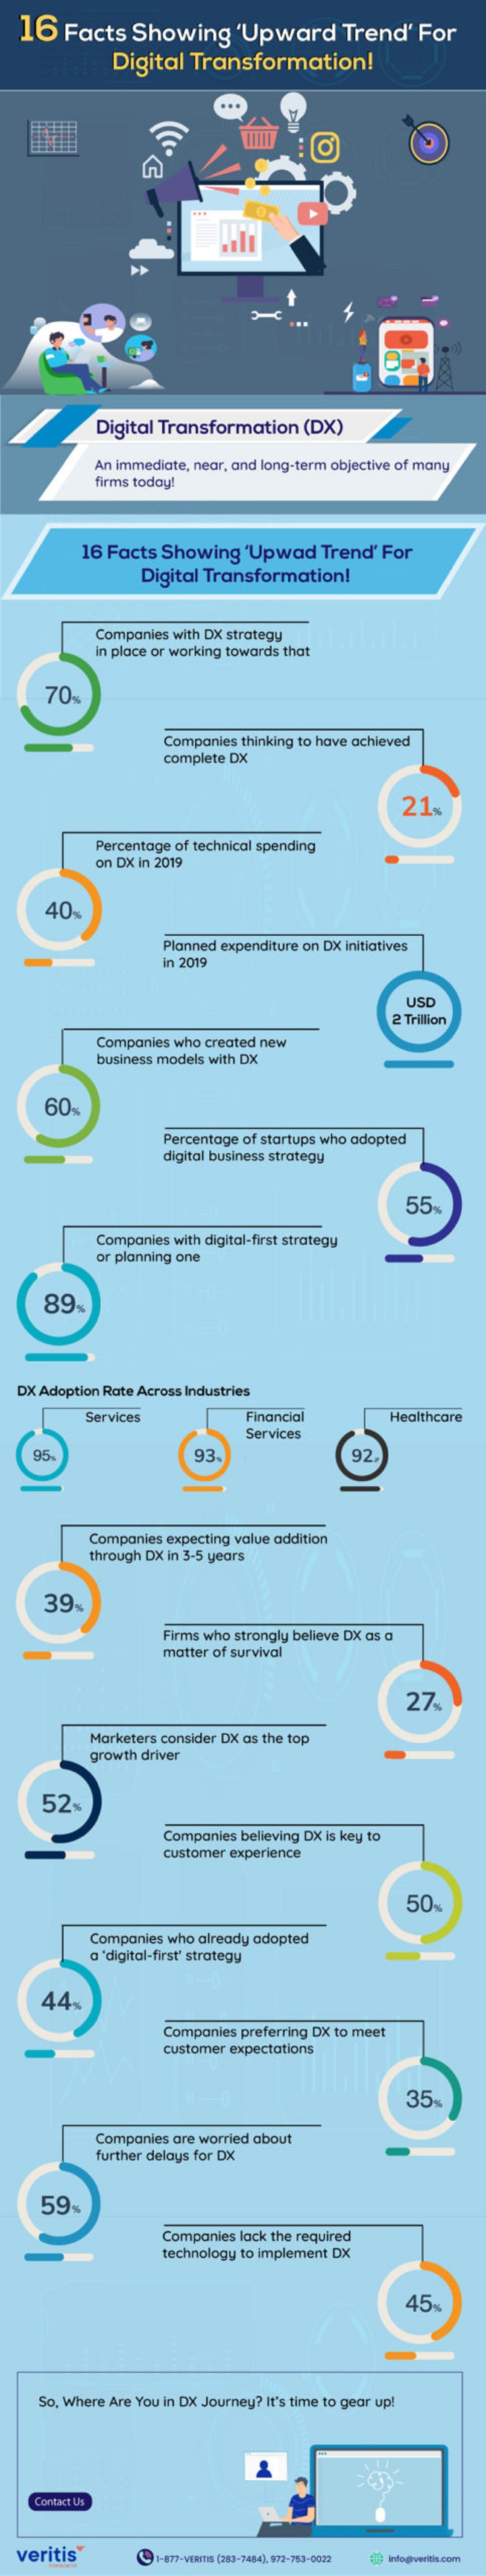 16-facts-showing-upward-trend-for-digital-transformation-infographic